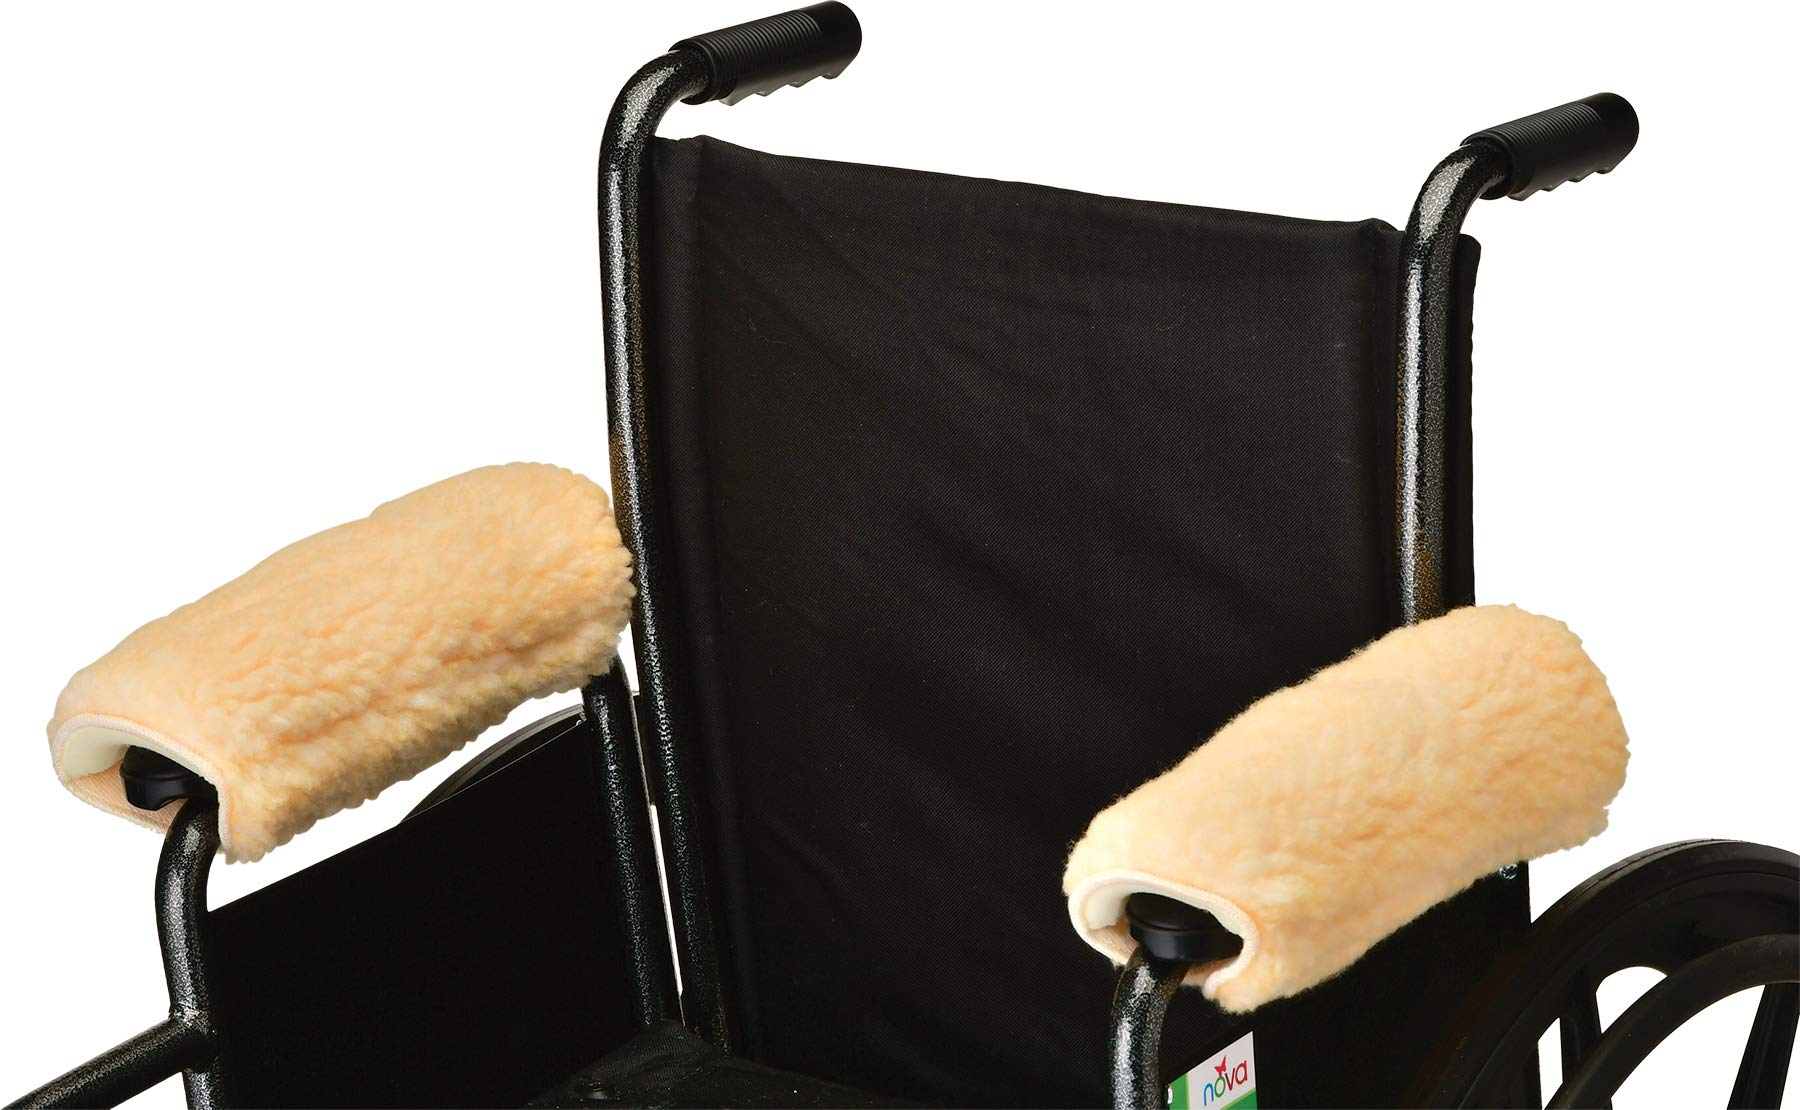 Nova Sheepskin Fleece Armrest Covers for Wheelchairs, Transport Chairs & Arm Chairs, Universal Fit, Washable, One Pair by NOVA Medical Products